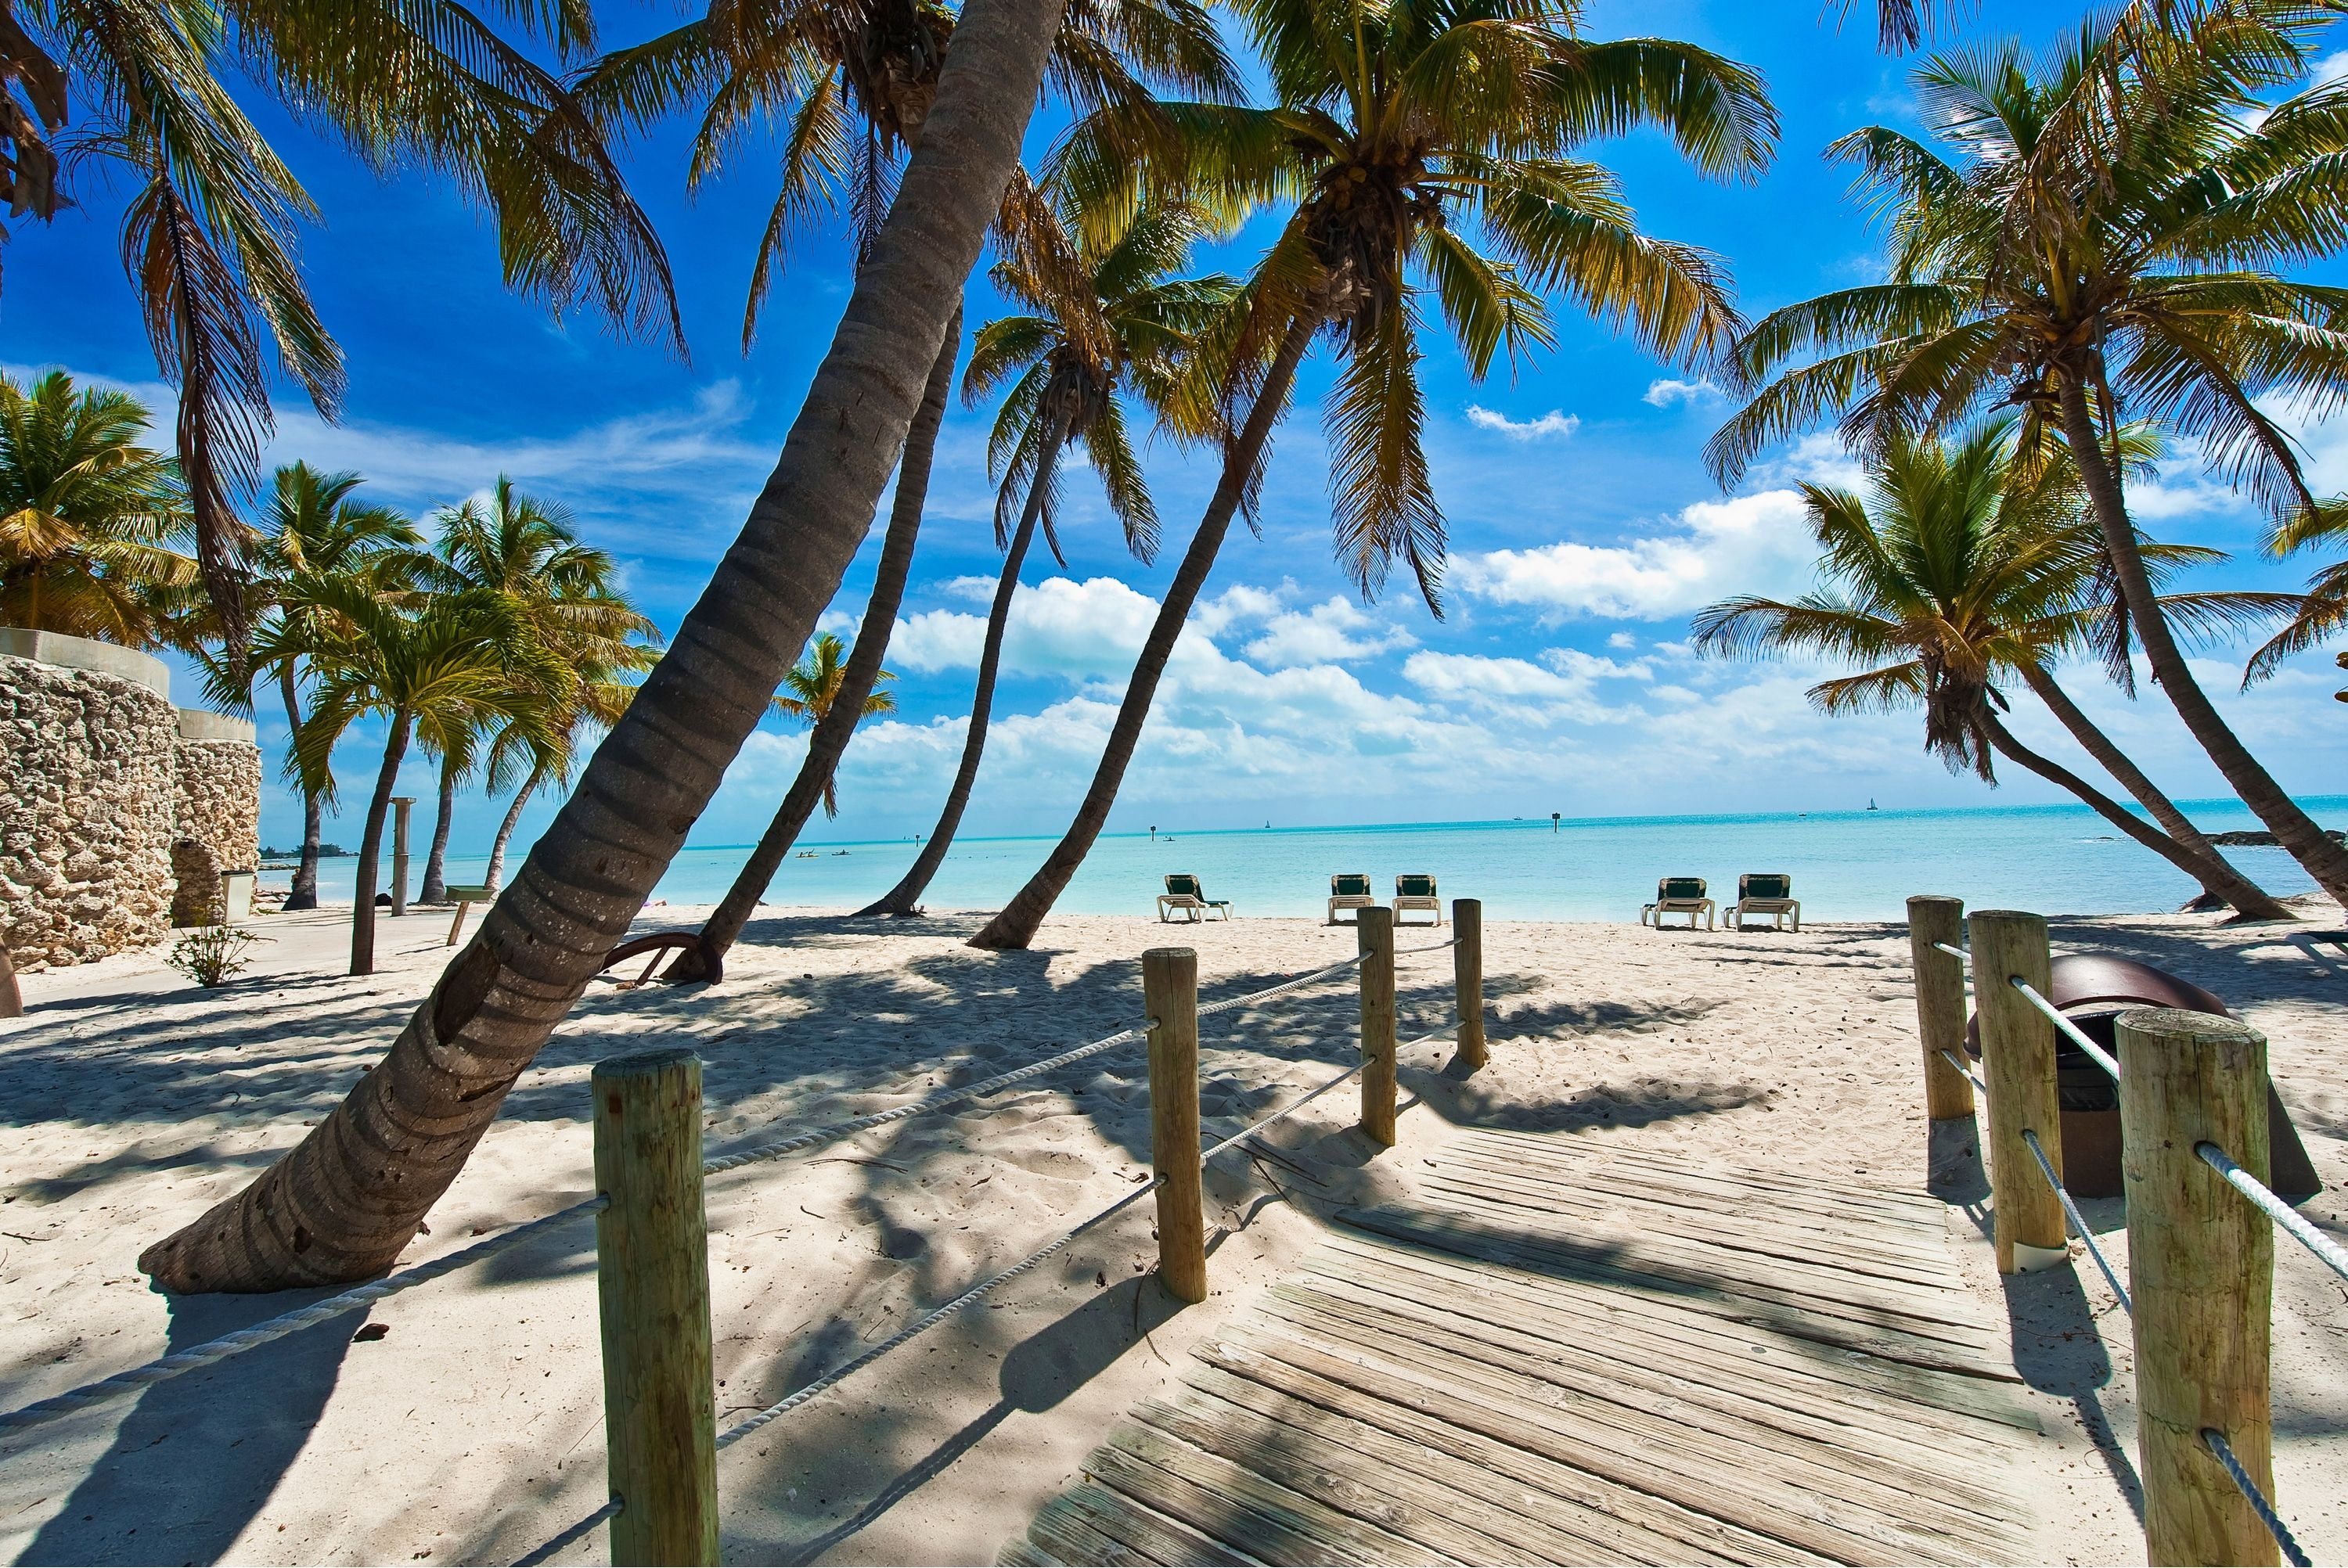 Teamtullytravel Was Off To Key West Florida Havana Cuba We Were One Of The Last Ships To Leave The Island Of Cuba B Key West Beaches Florida Keys Key West